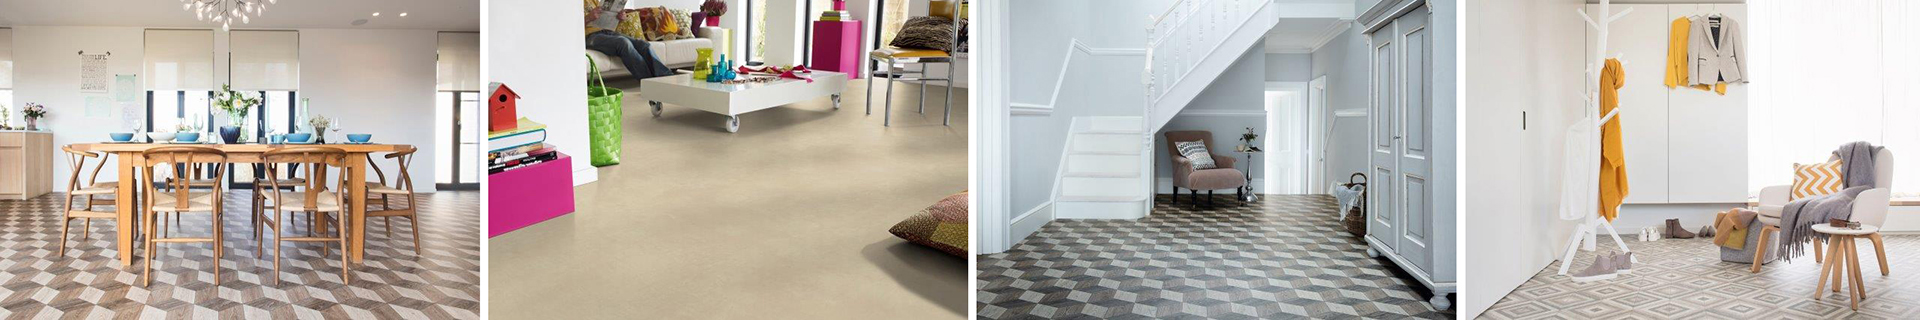 kr flooring about us room ideas3